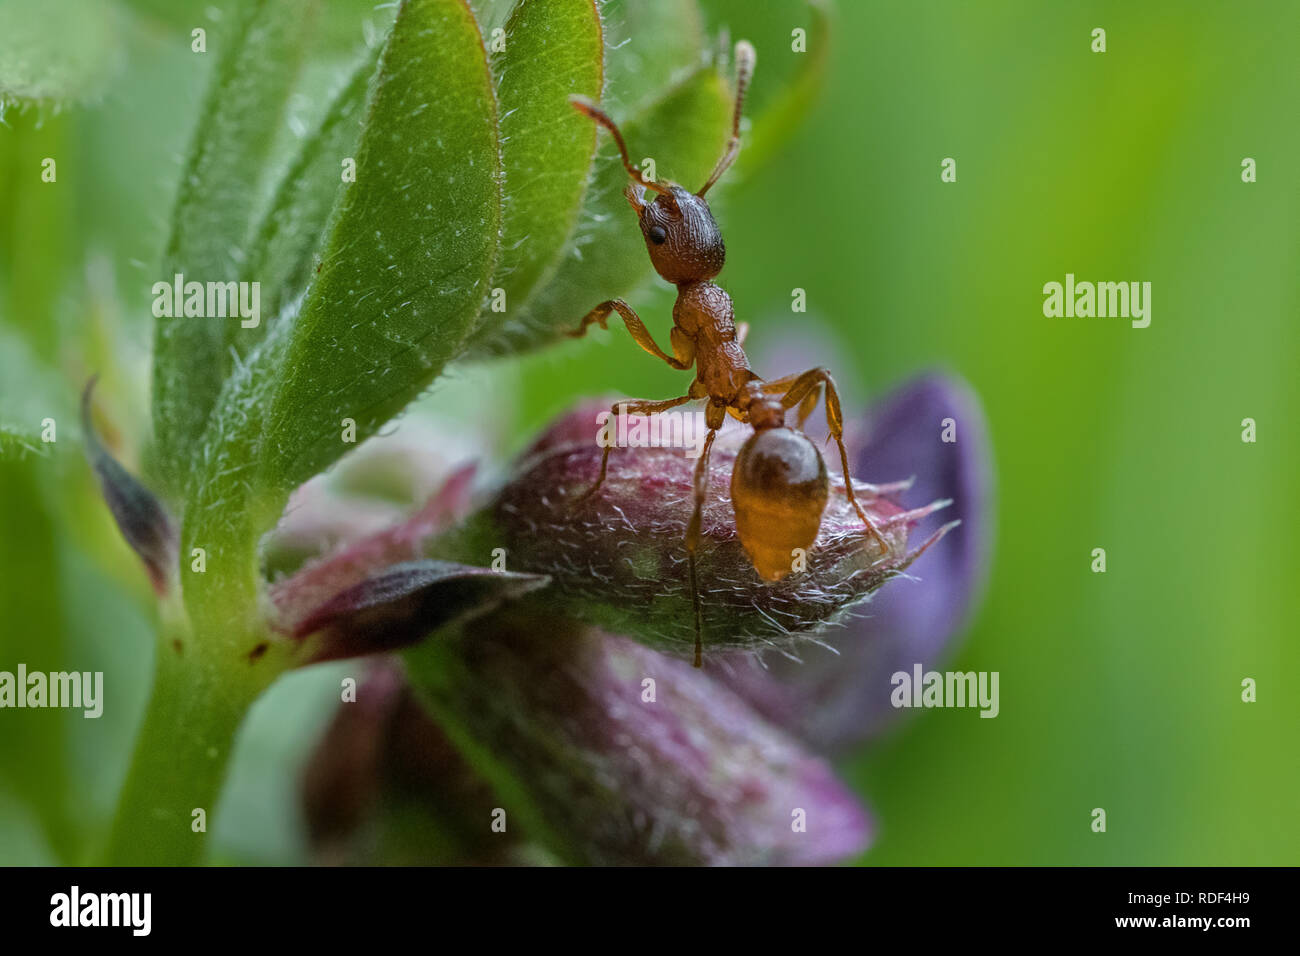 Macro shot of a busy ant - Stock Image